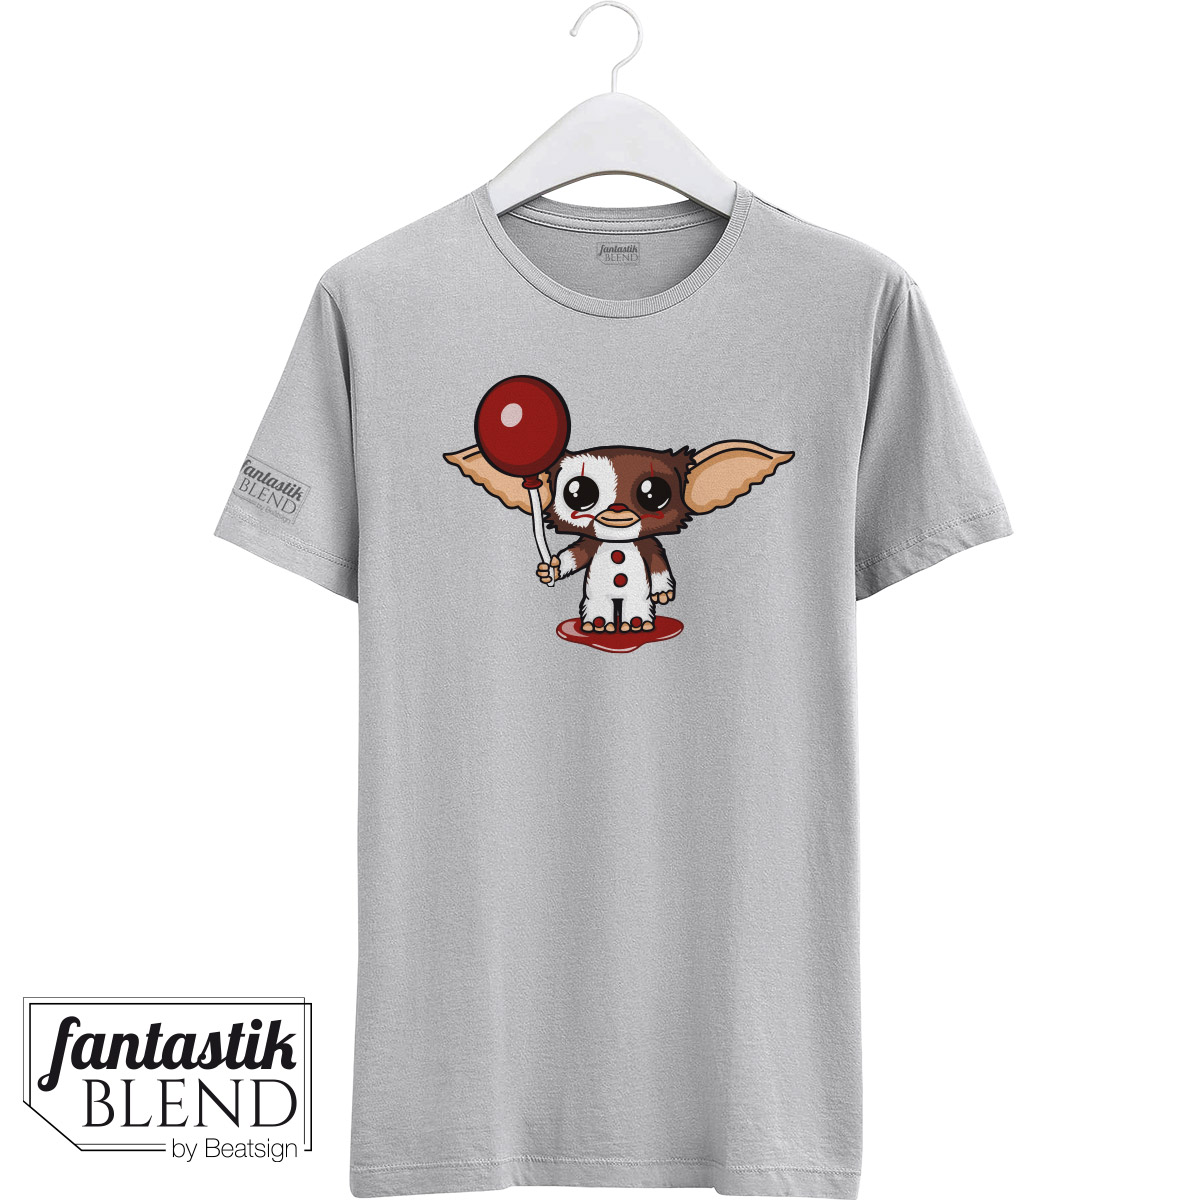 T-shirt-gizmo-it-beatsign